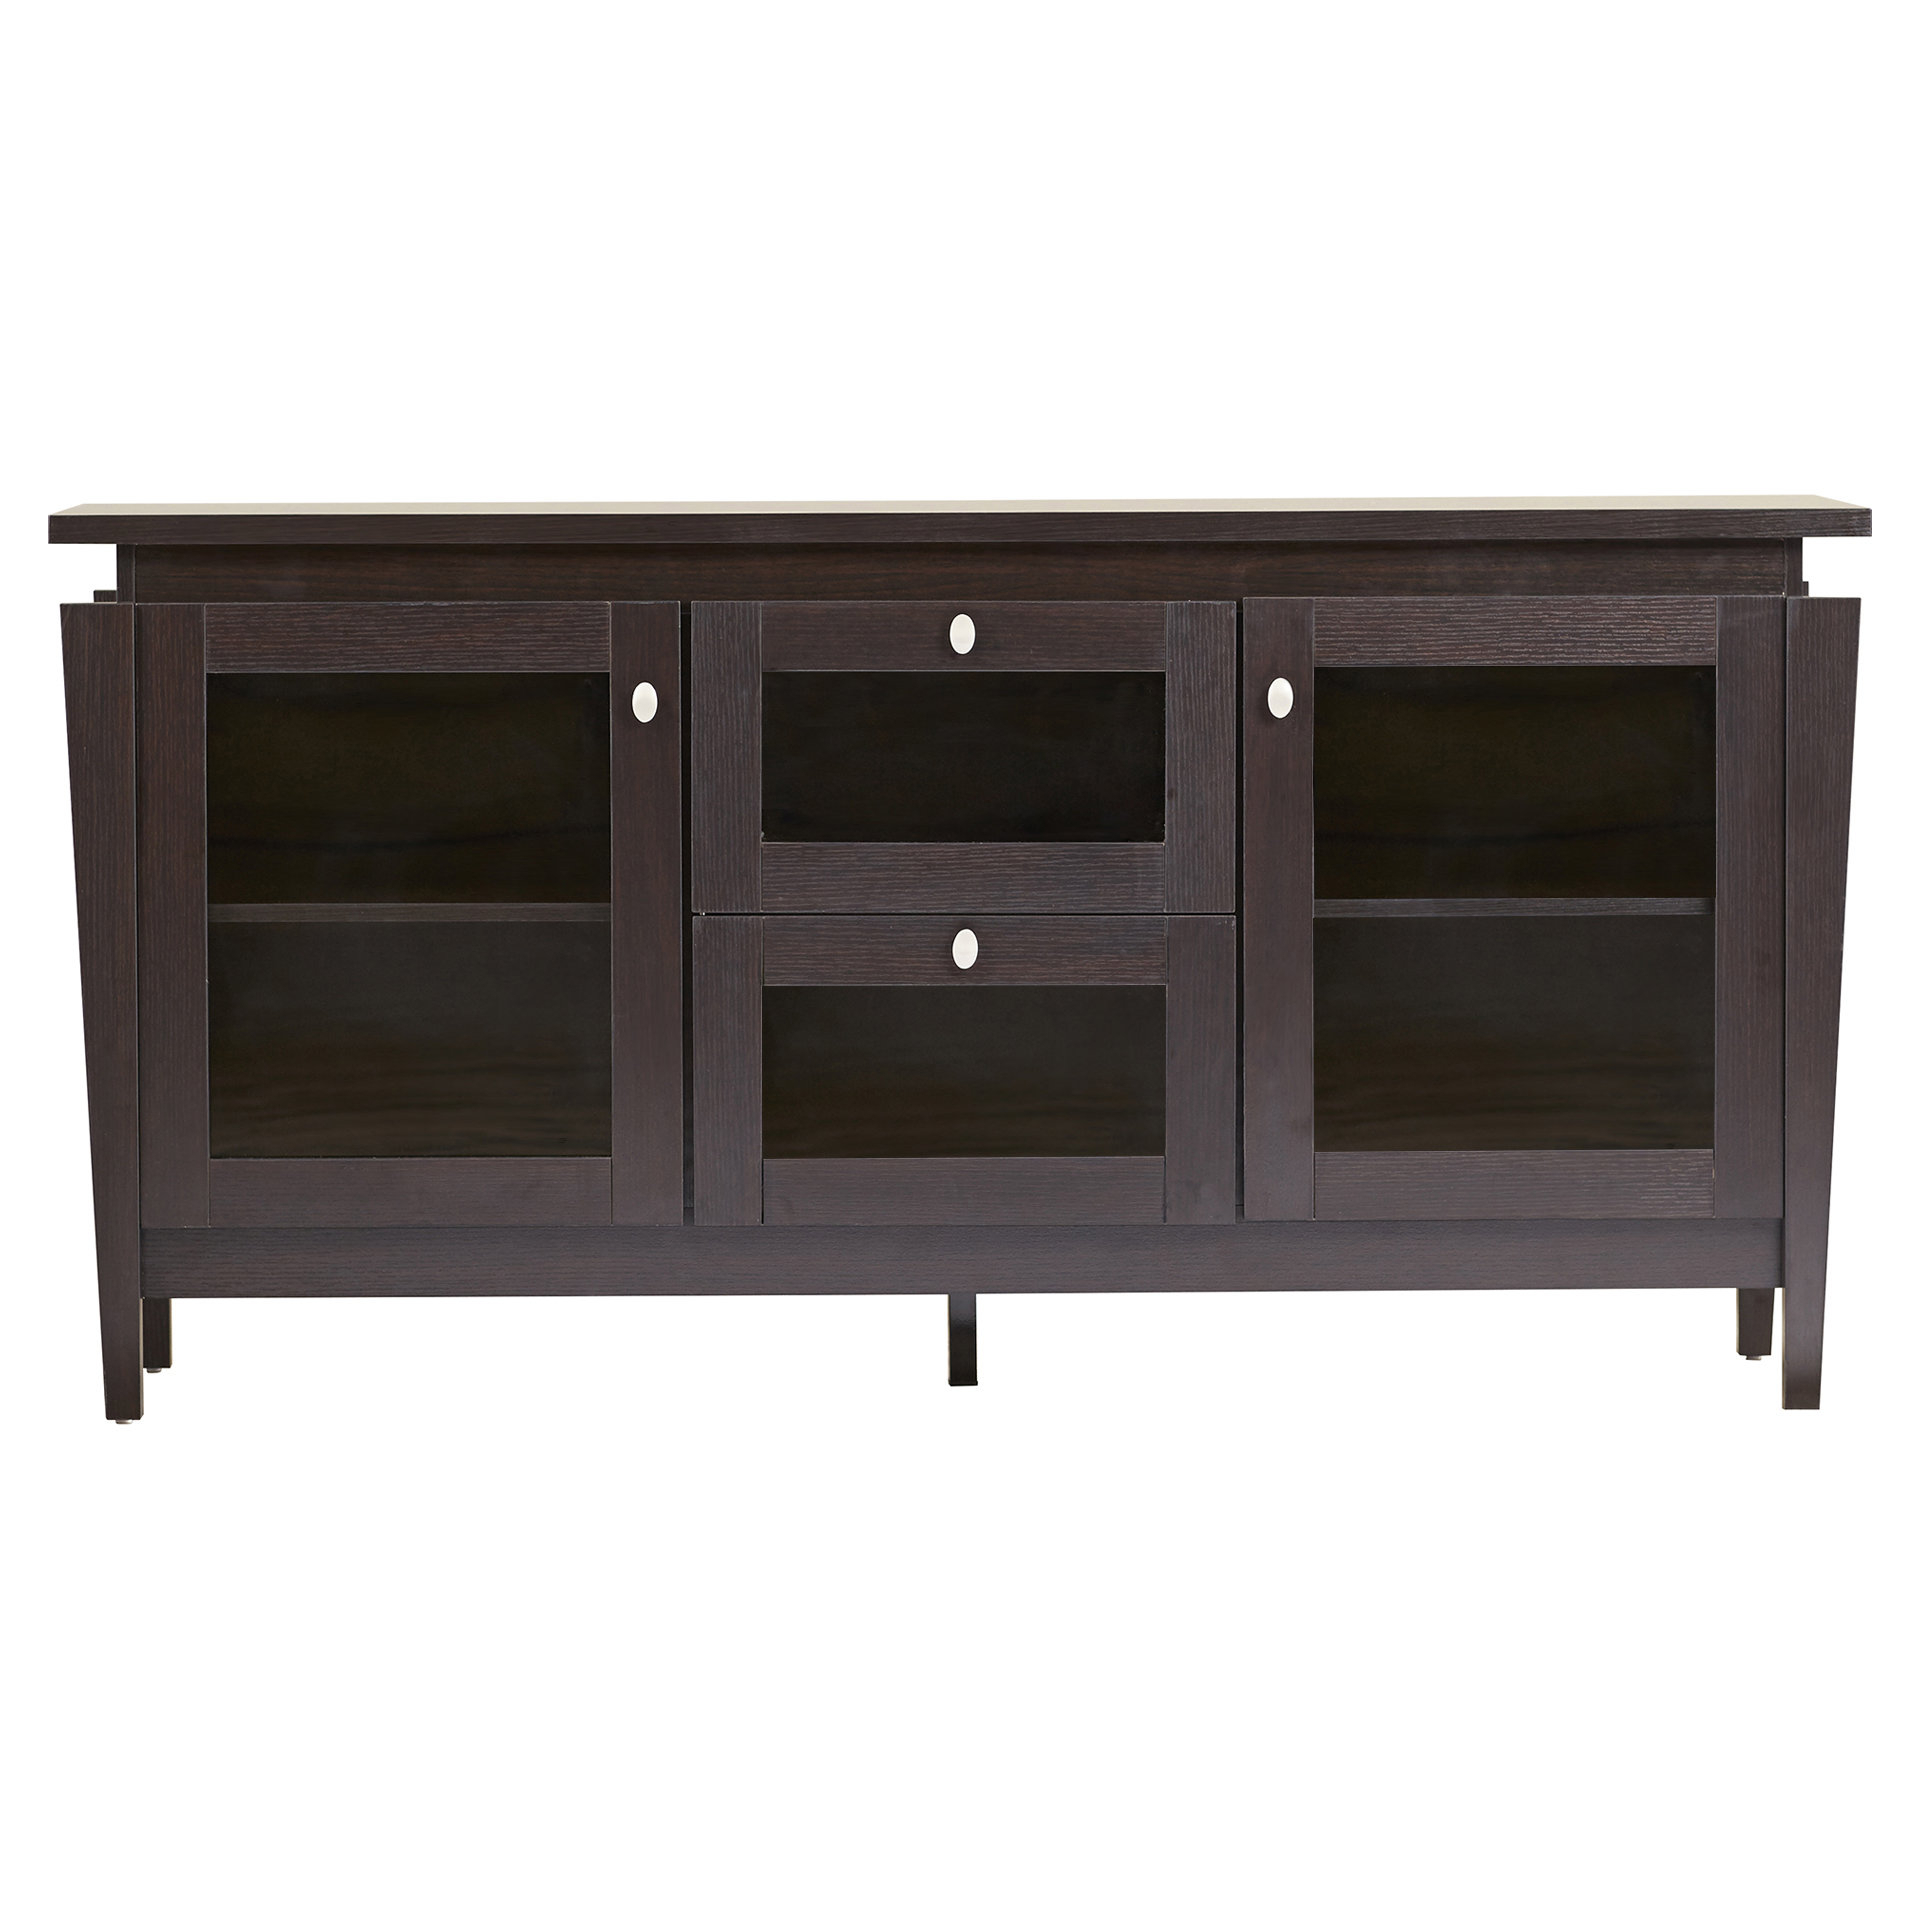 Inspiration about Tate Sideboard Intended For Most Popular Tate Sideboards (#7 of 20)